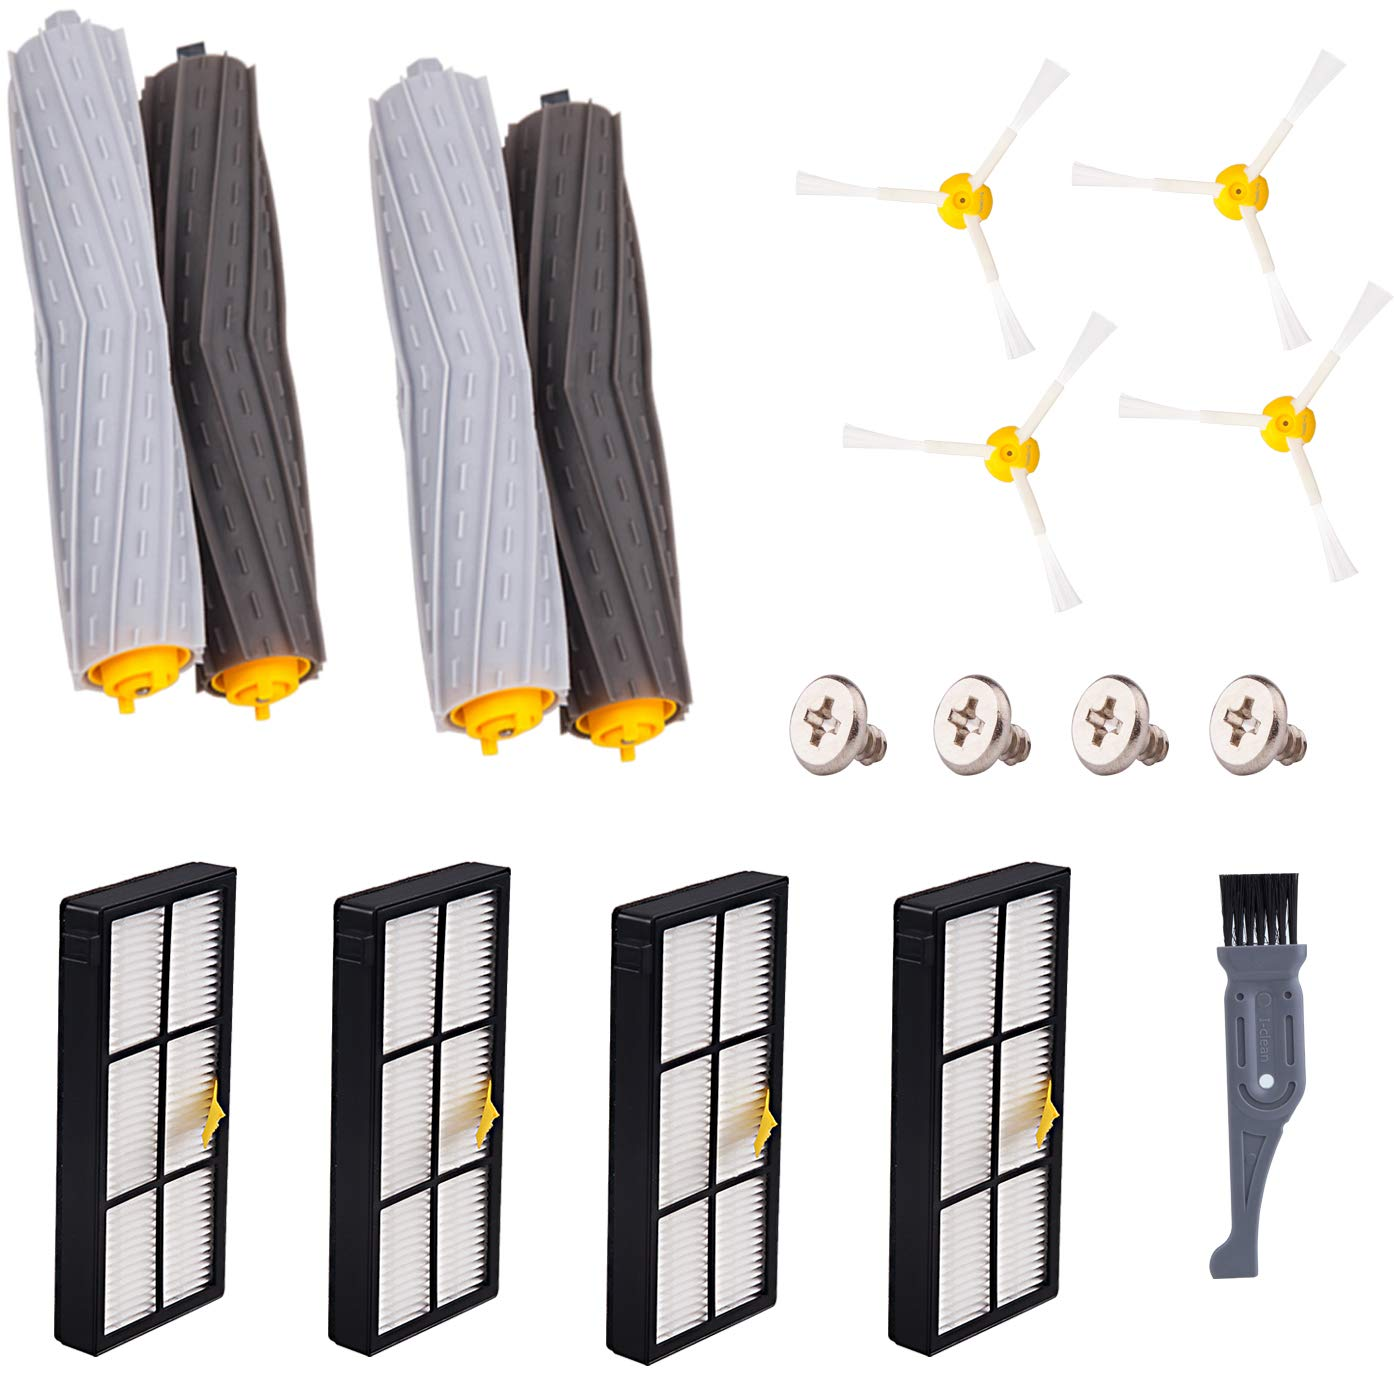 I clean Replacement Parts for iRobot Roomba 960 980 900 890 880 860 850 861 (800&900 Series), Accessories Kit with 4pcs Hepa Filter, 4pcs Brush, 2 Sets Tangle-Free Debris Extractor